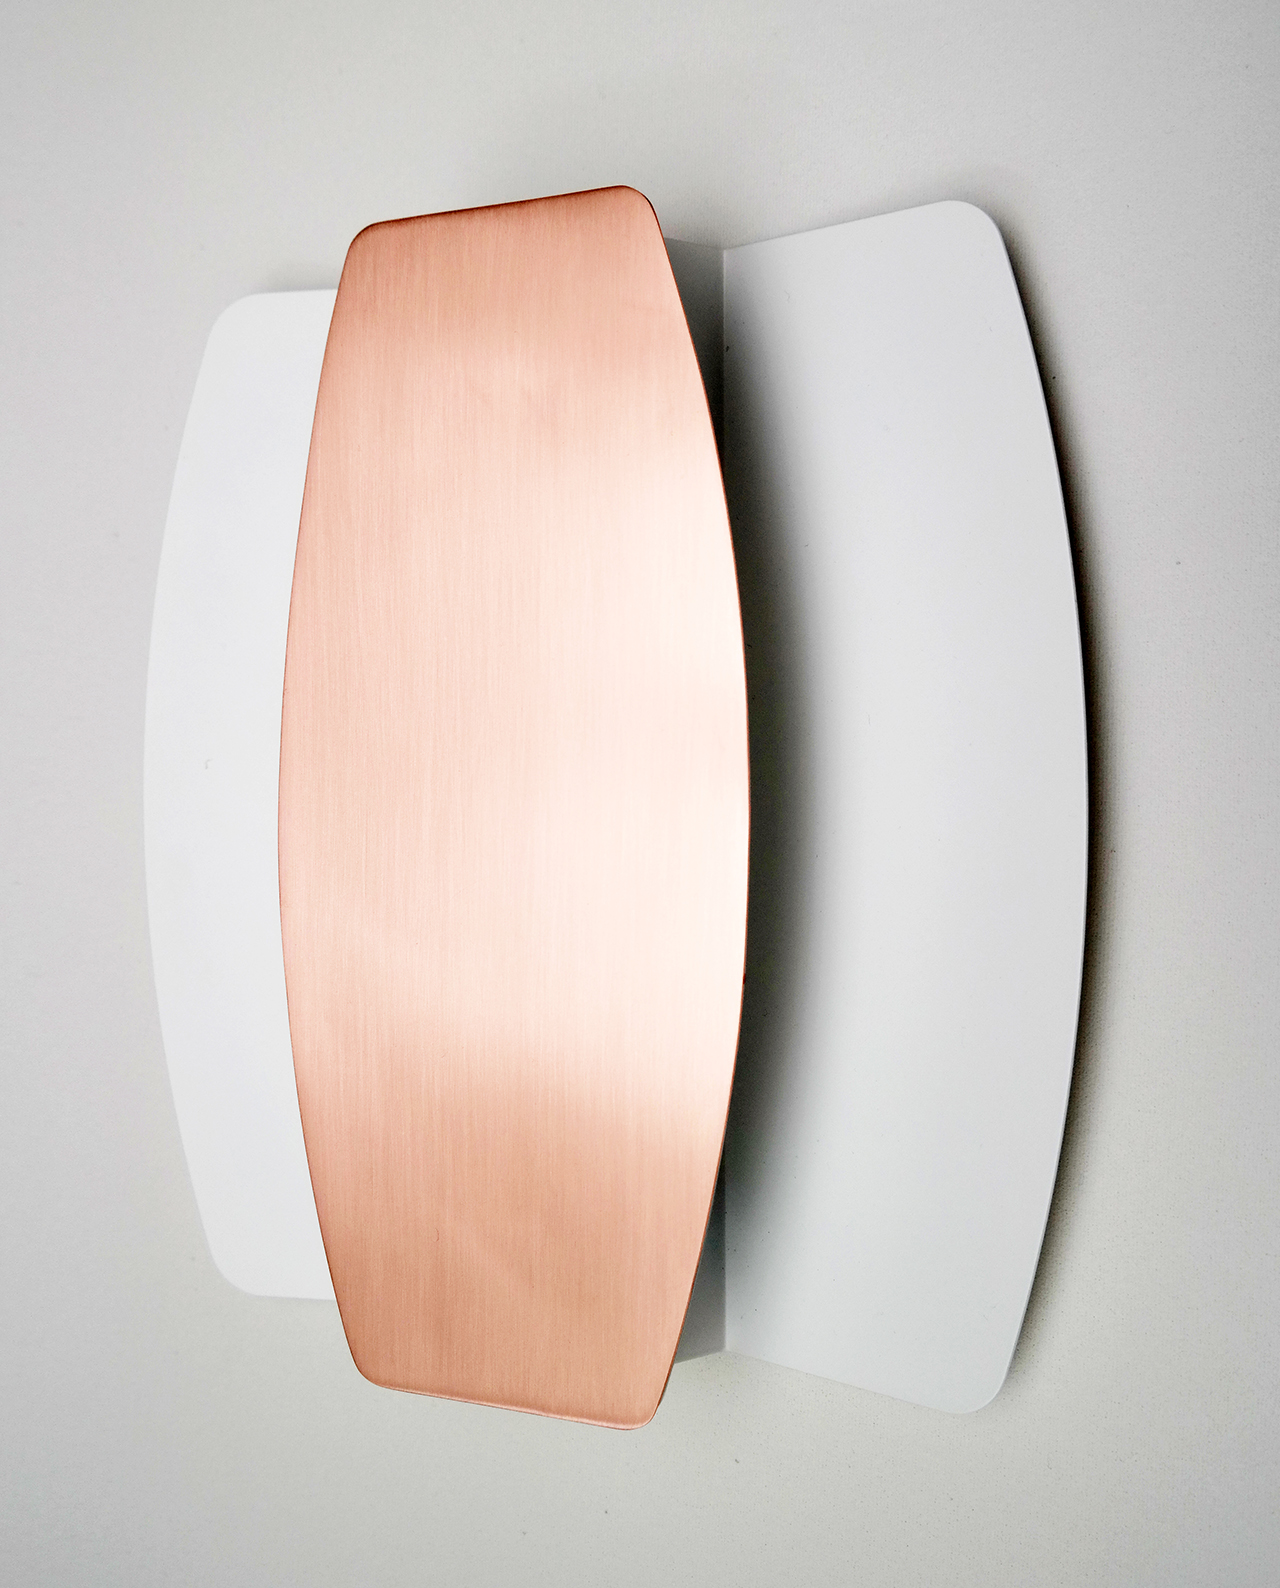 PAPPILLON Wall Lamp by Formagenda